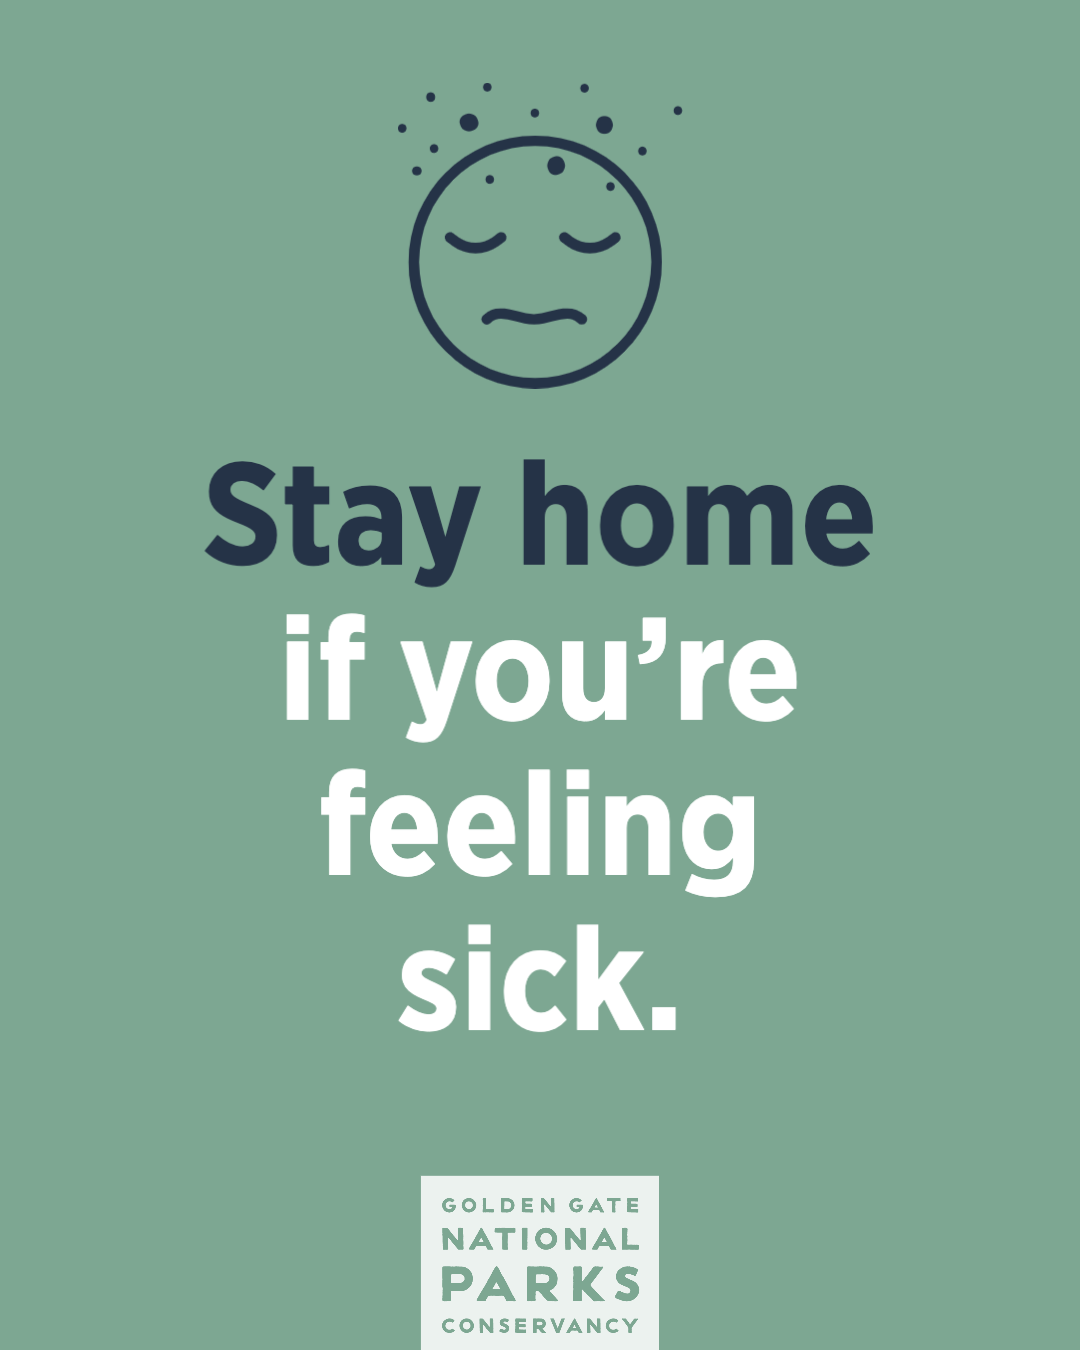 Stay home if you're feeling sick